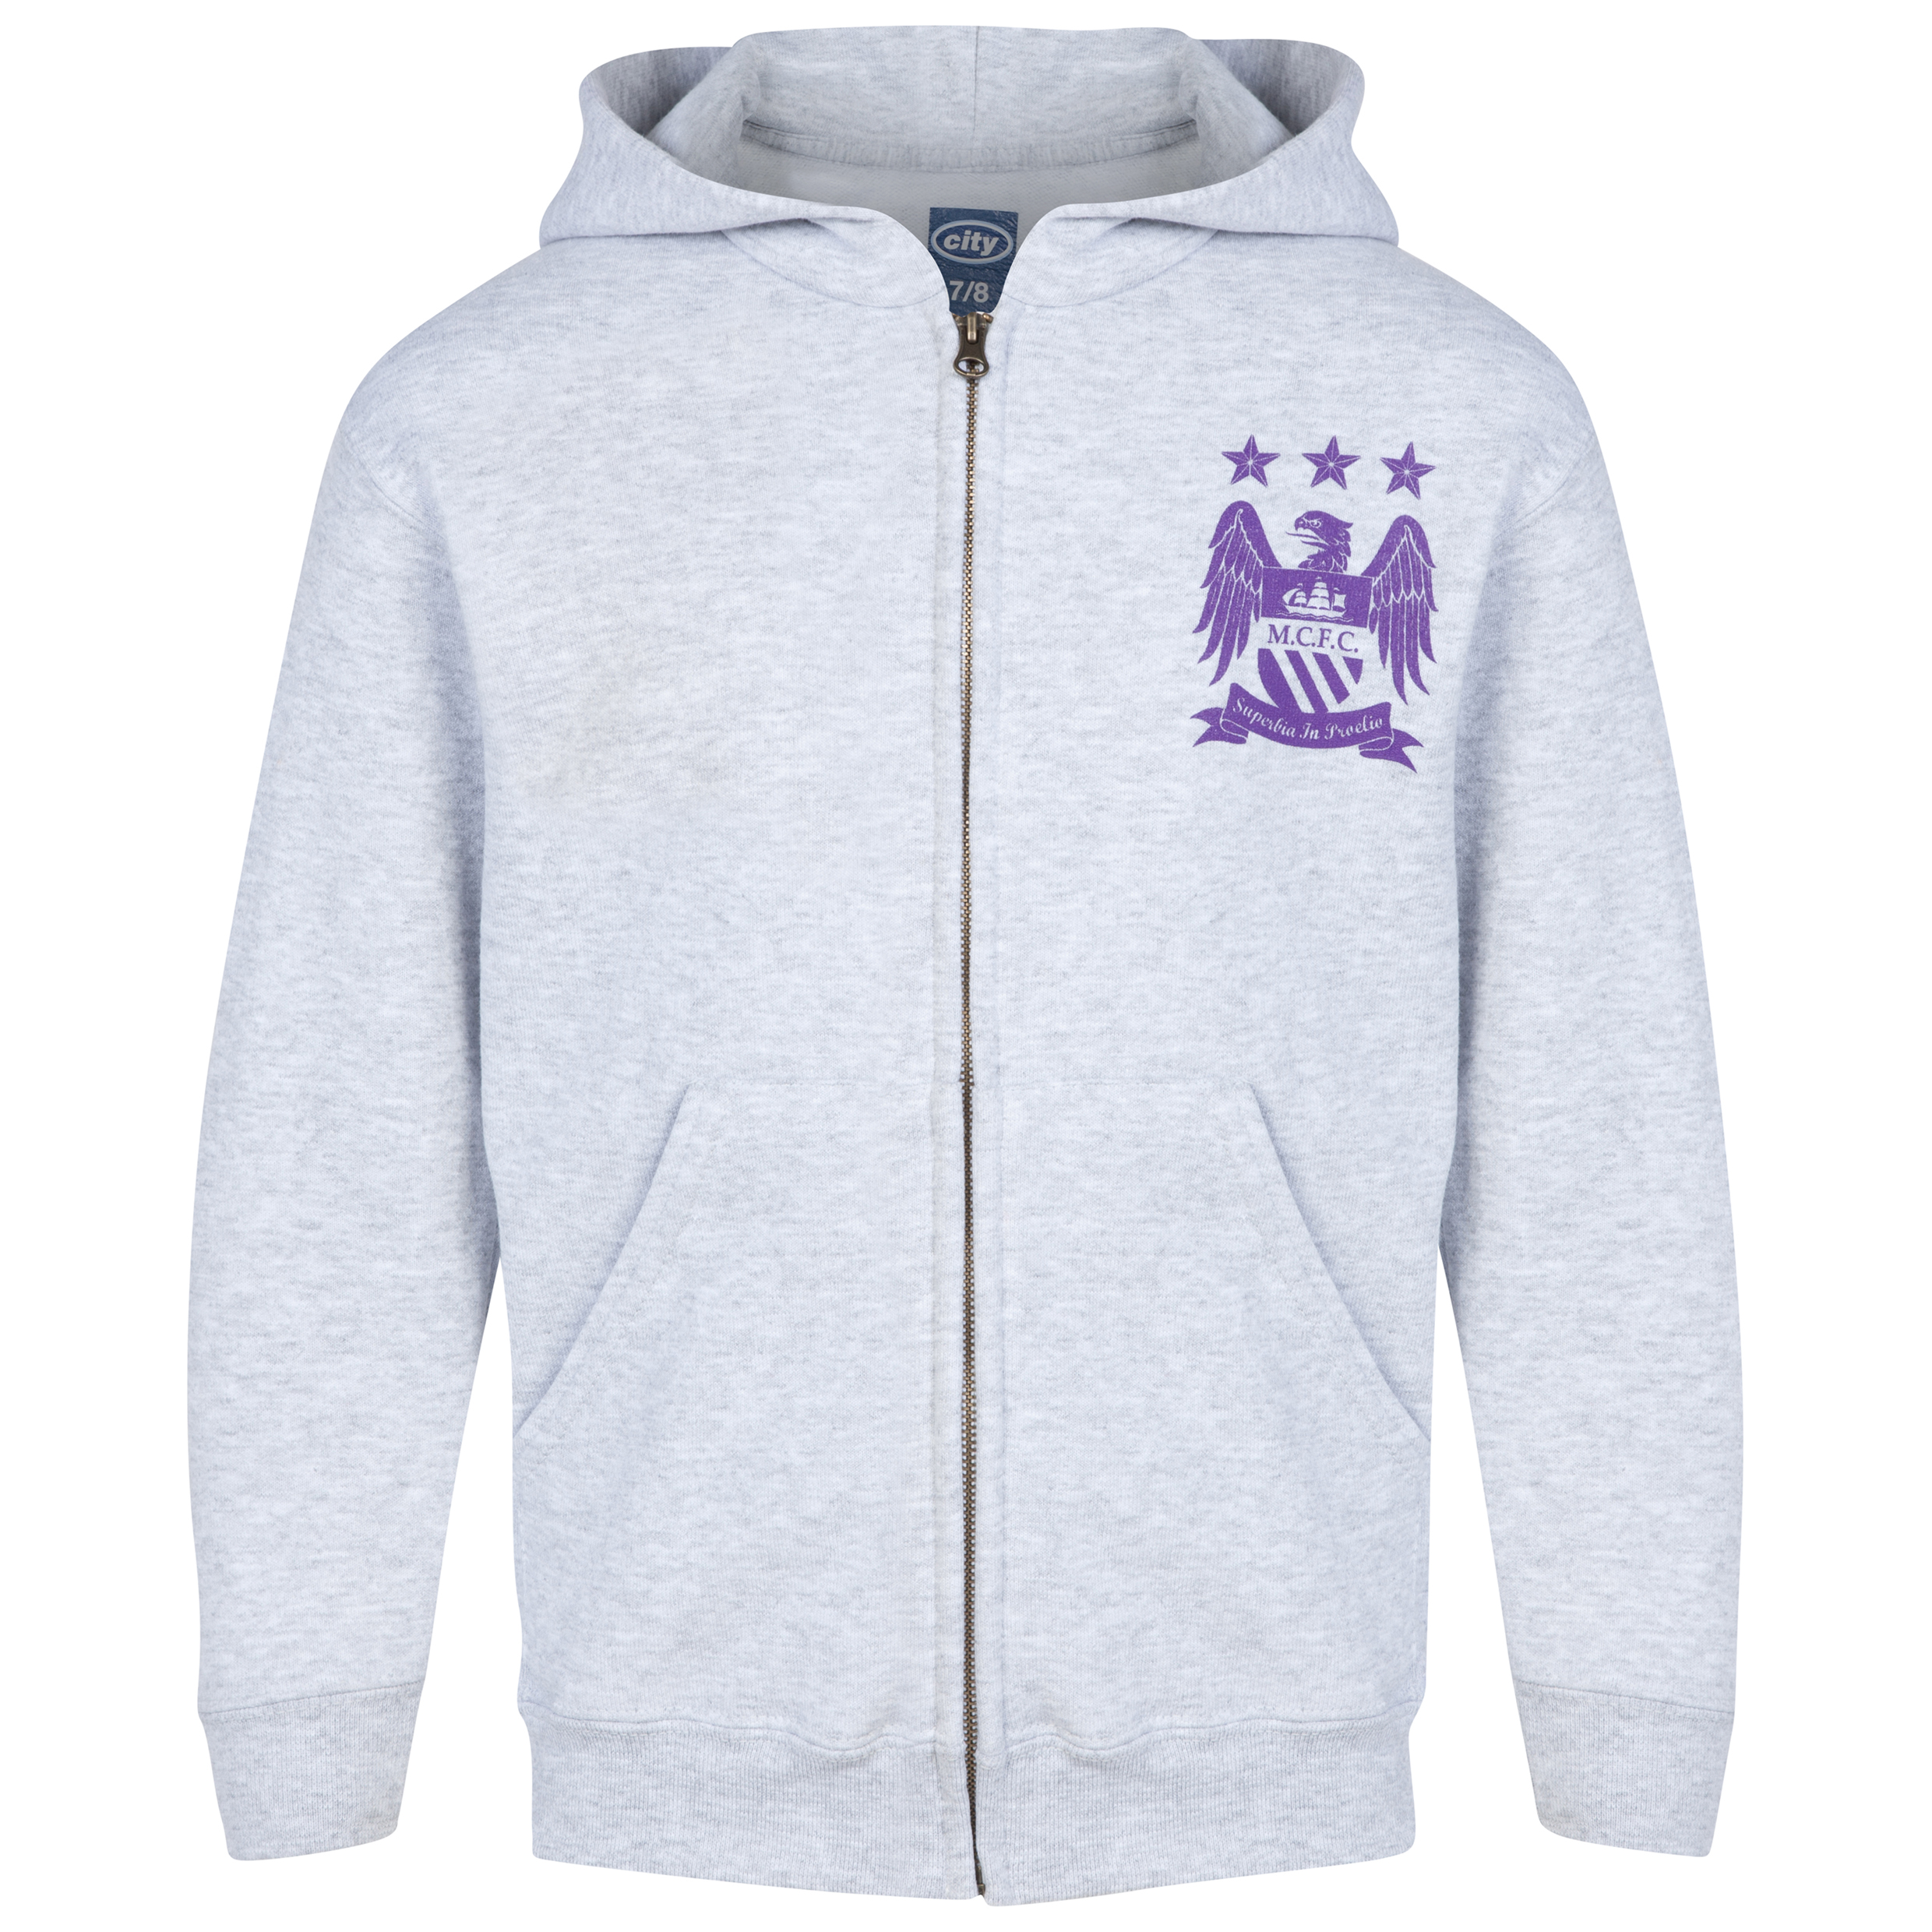 Manchester City Print Hoodie - Heather Grey - Girls